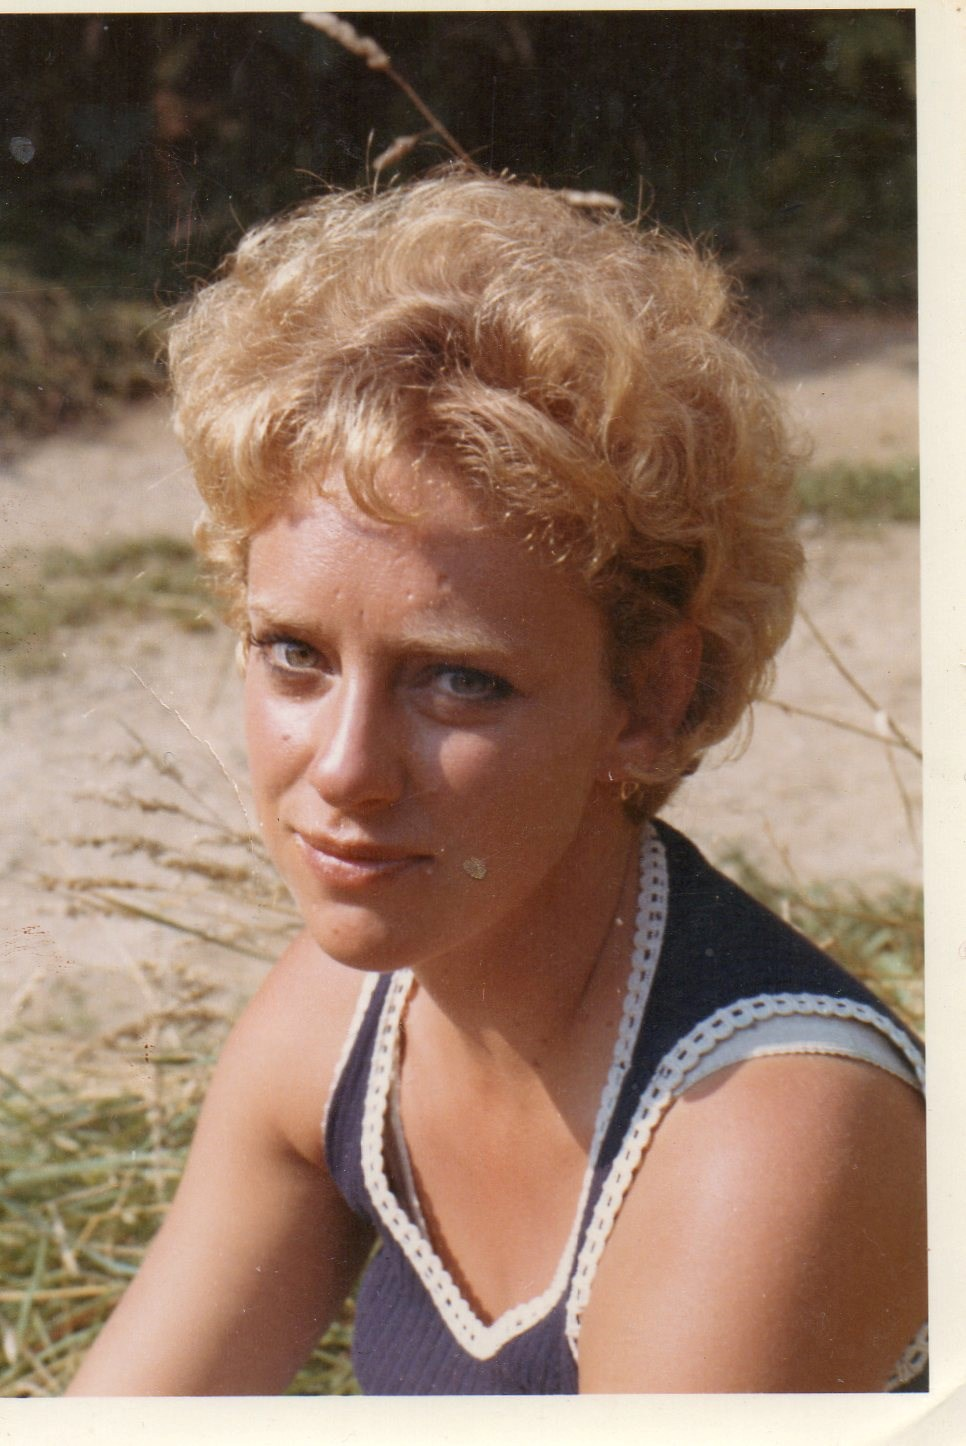 Sonia in the 1960s